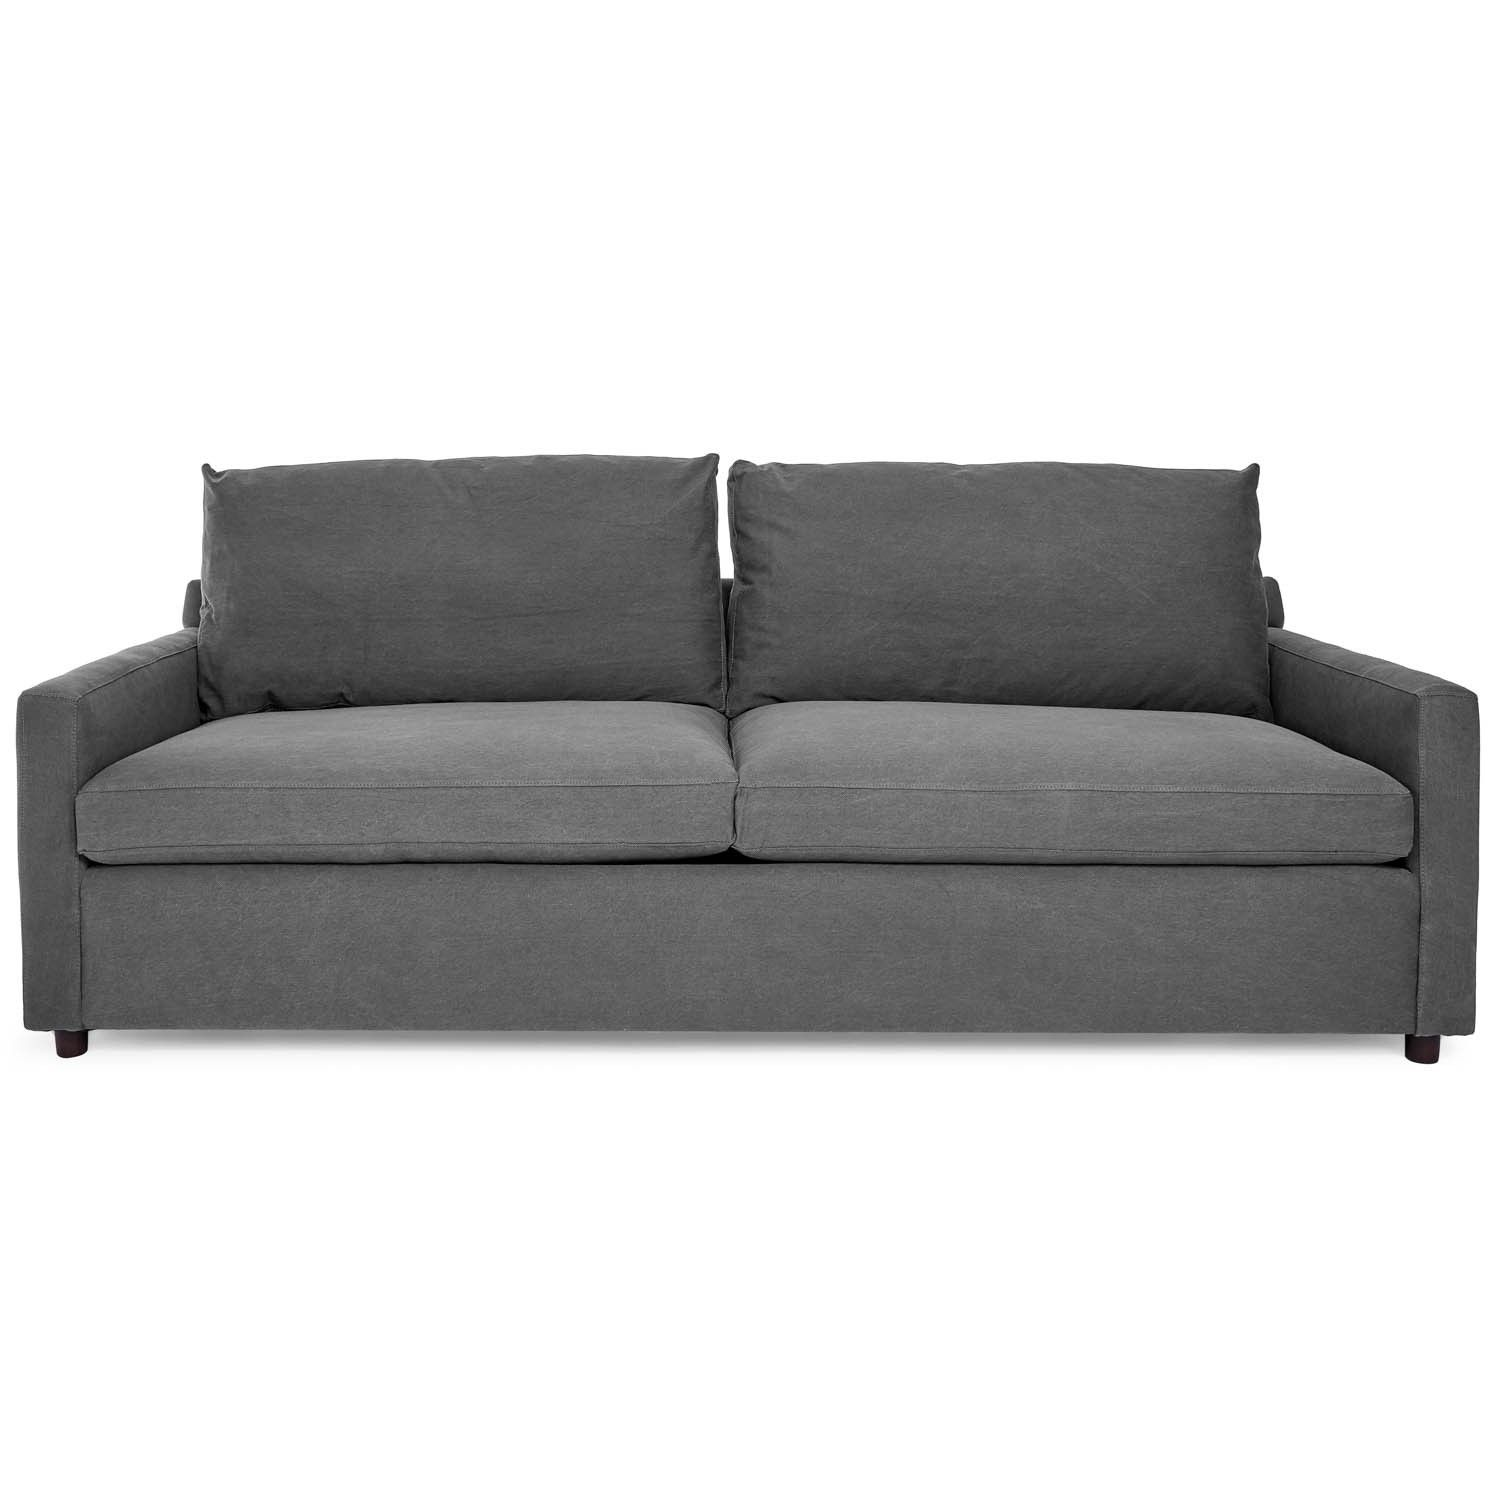 Exclusively At Abc The Lucali Sleeper Is The Intersection Of Contemporary Design And Multipurpose Function Converting From Clean Denim Sofa Sleeper Sofa Sofa